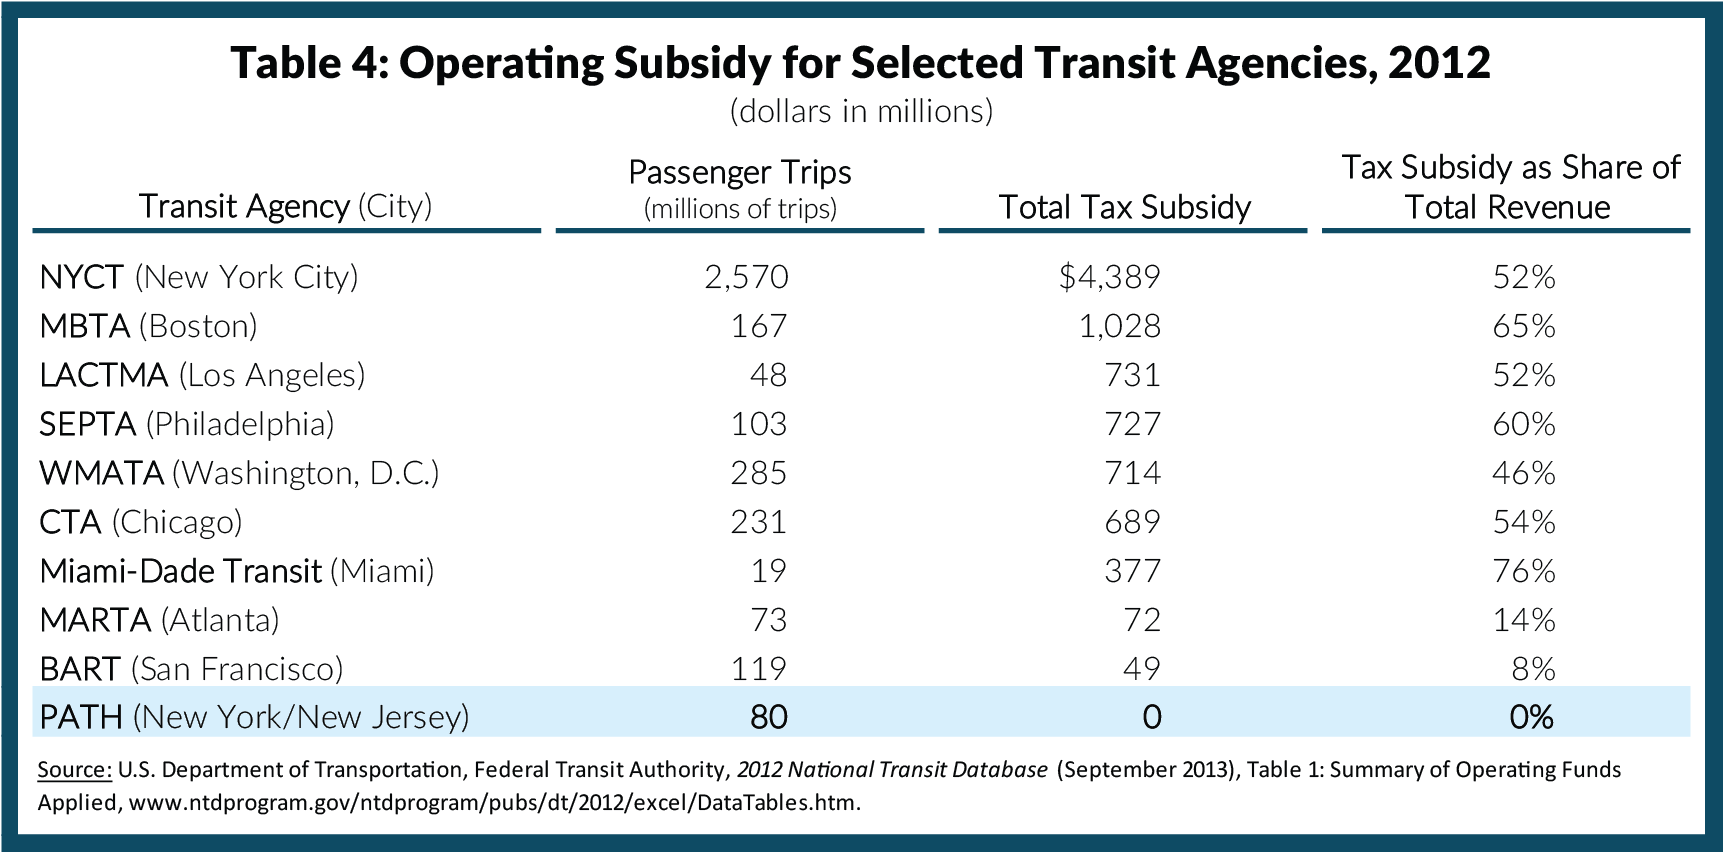 Table 4: Operating Subsidy for Selected Transit Agencies, 2012